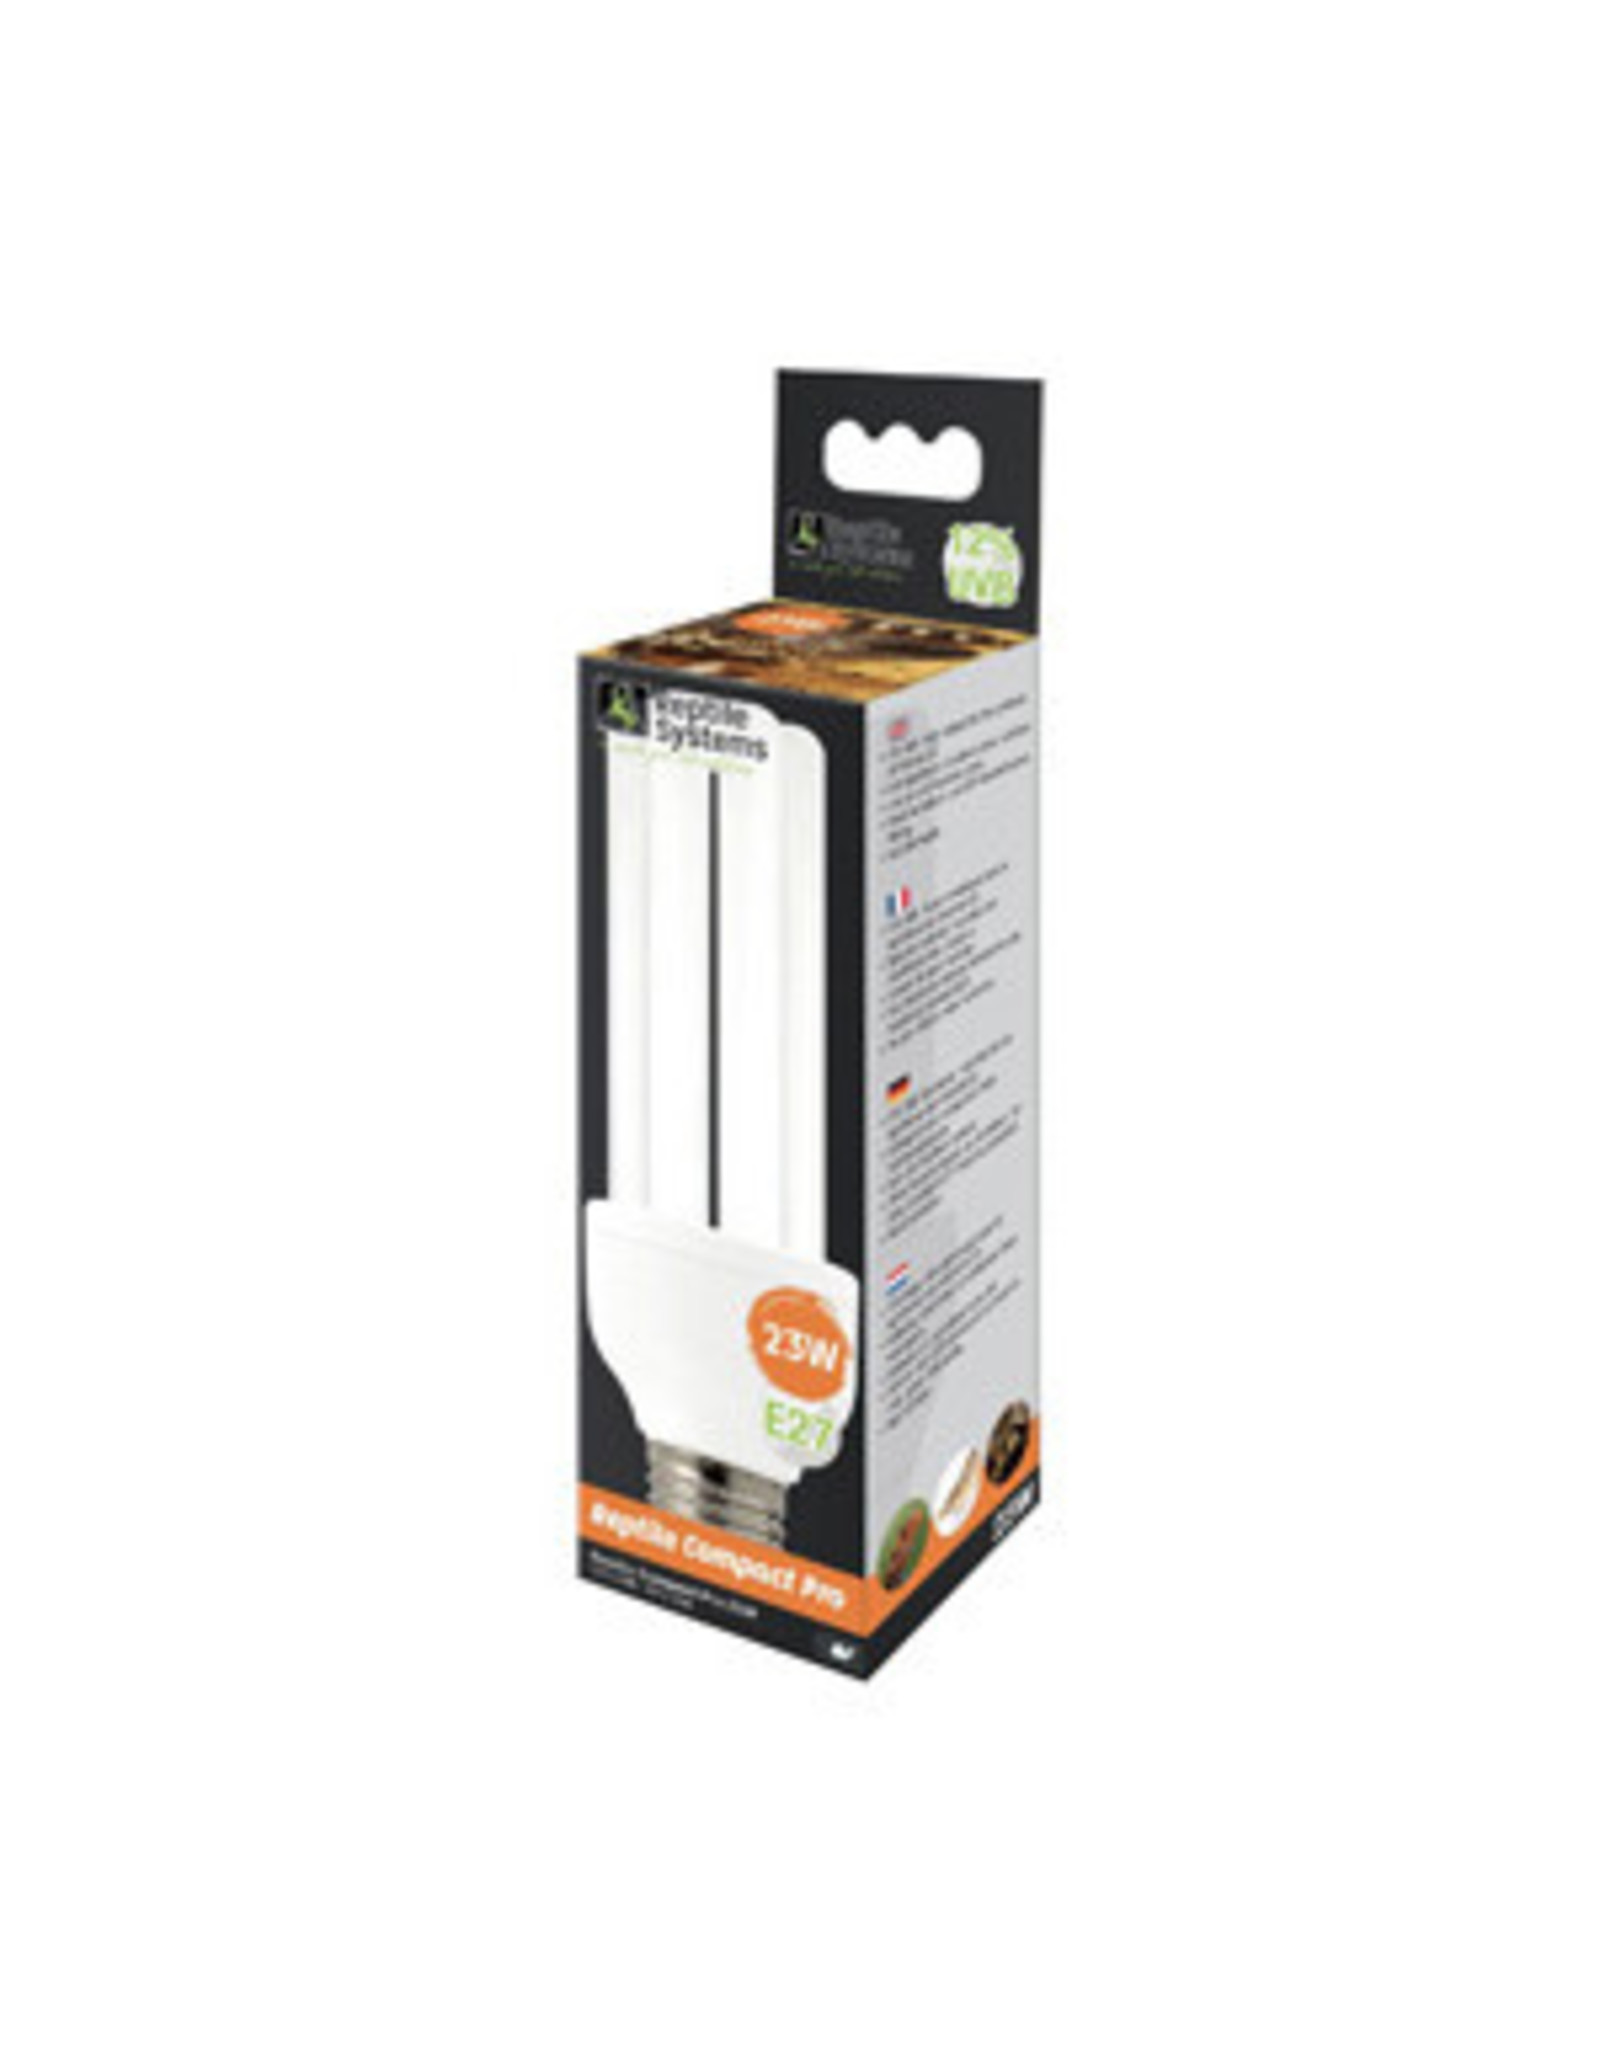 Reptile Systems RS Compact UVB Lamp Pro 12% 23w